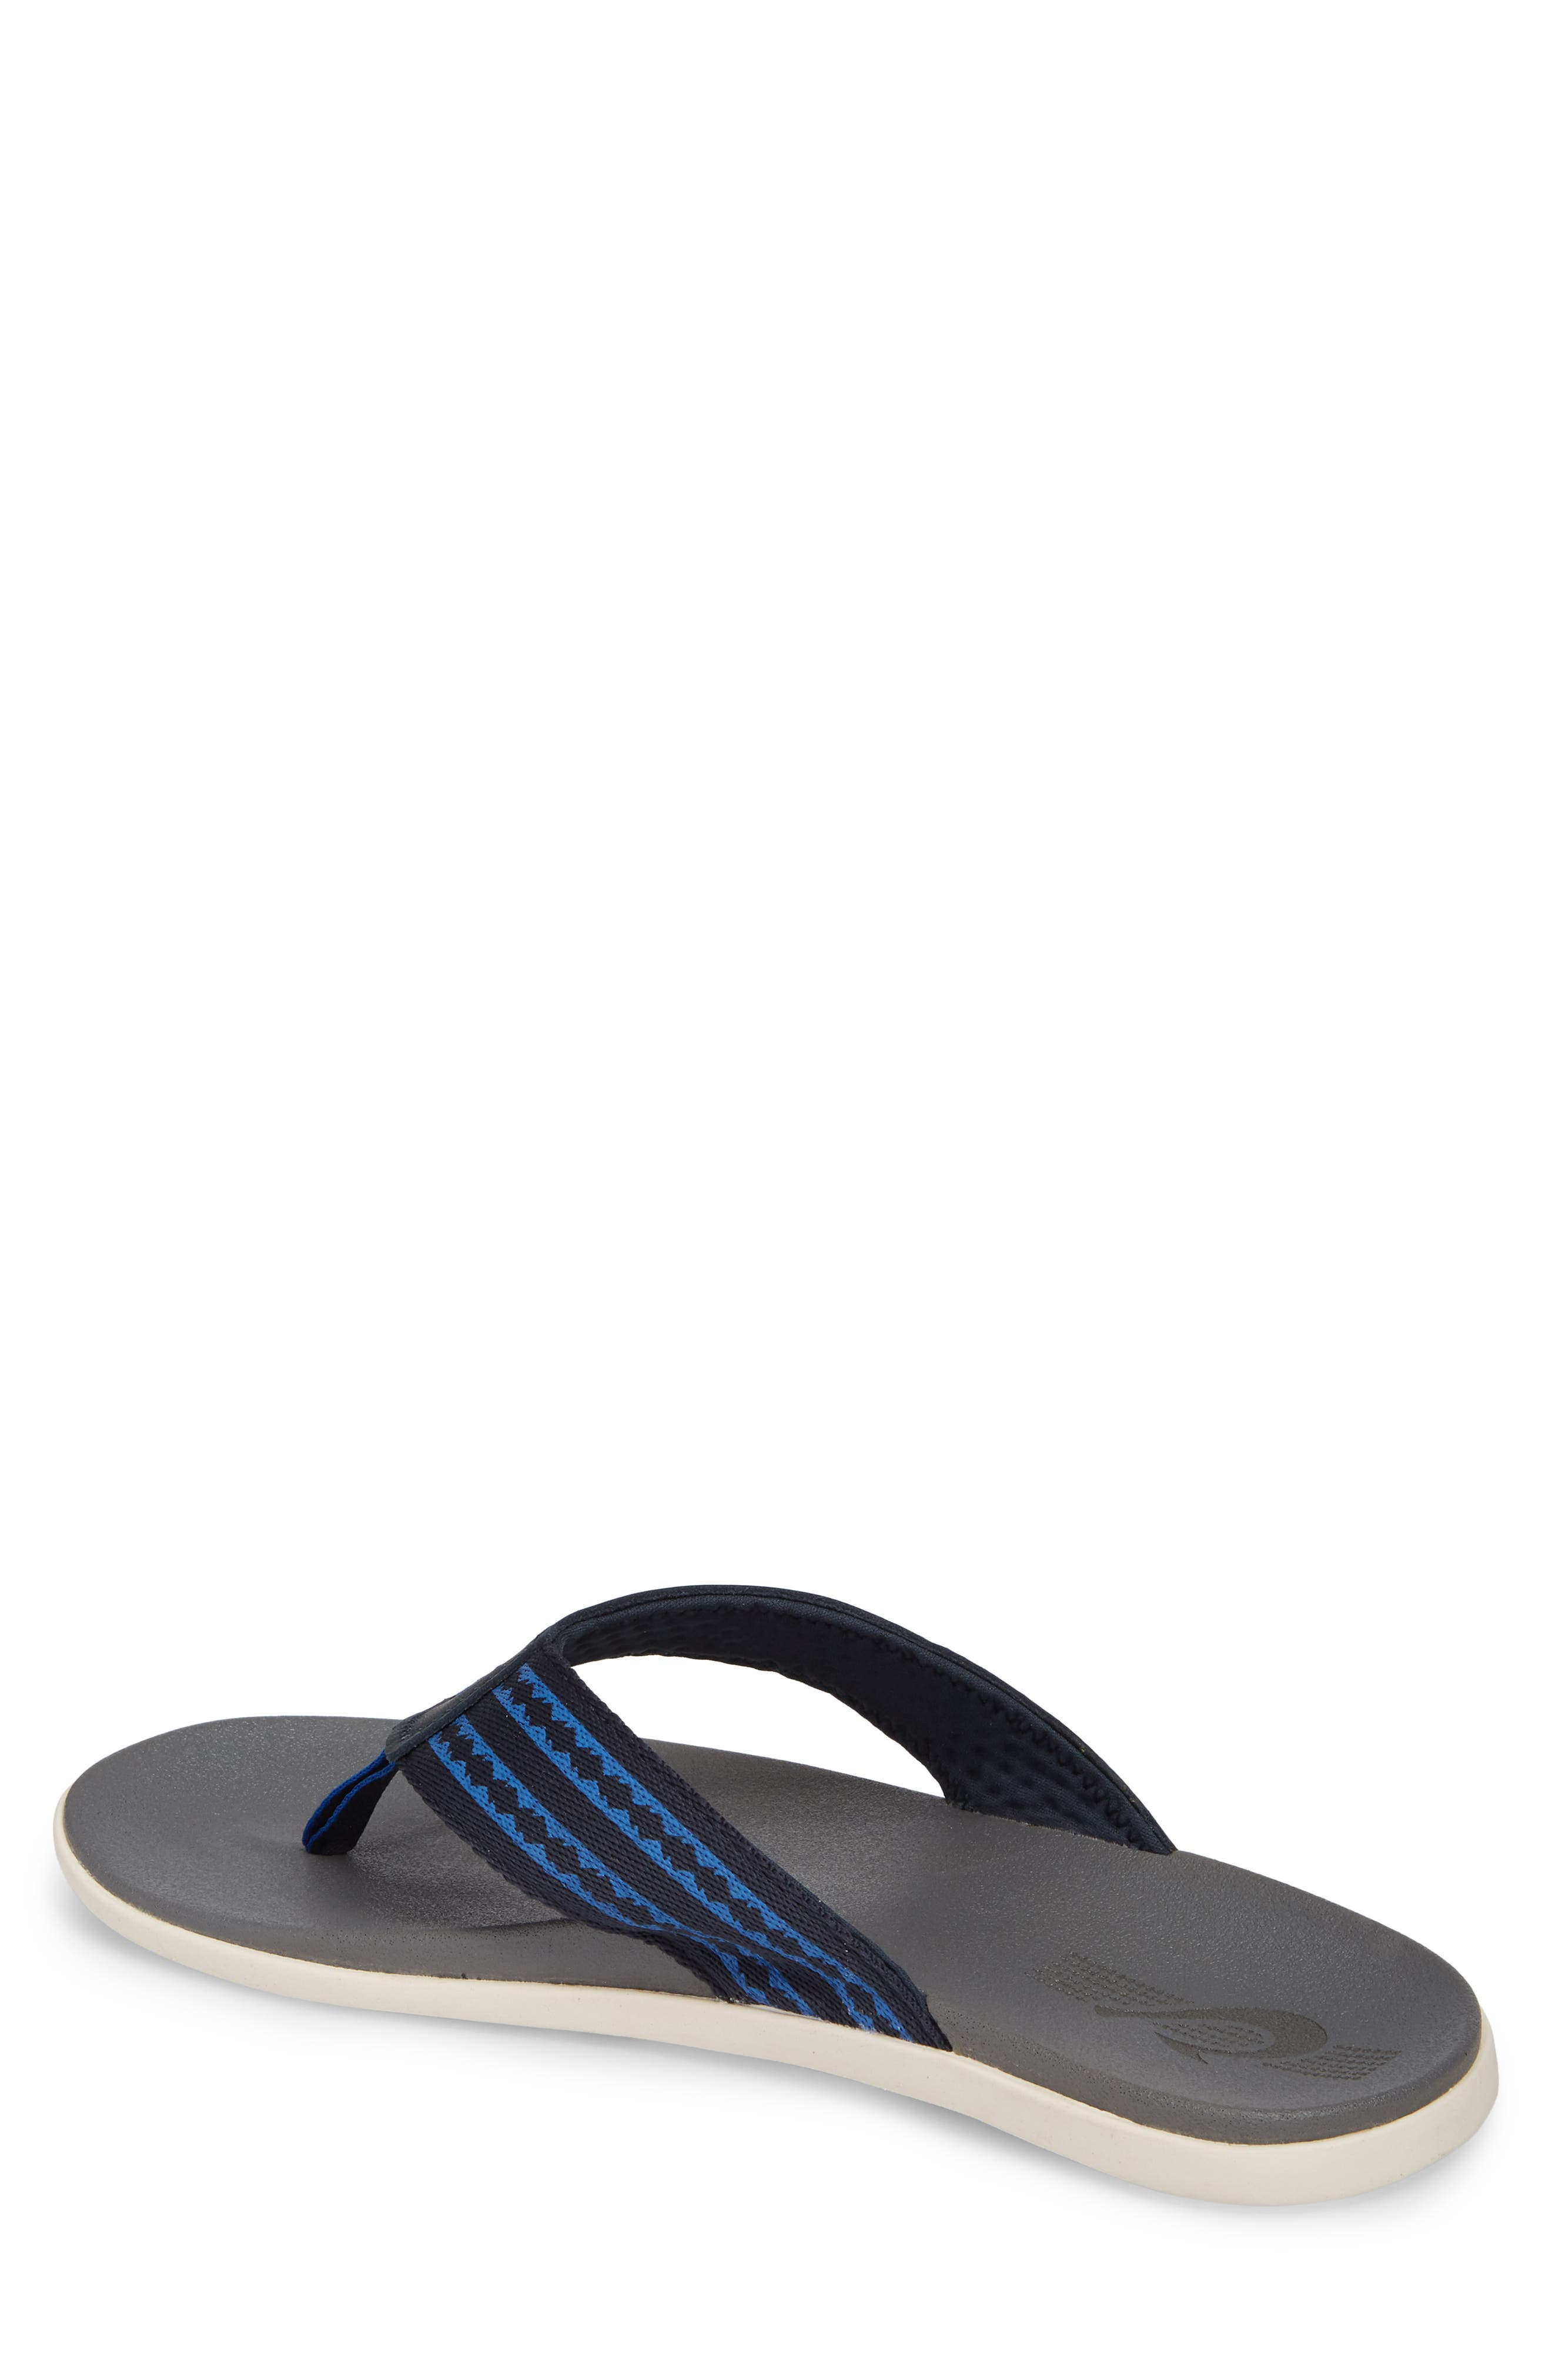 Kinona Flip Flop,                             Alternate thumbnail 2, color,                             Trench Blue/ Charcoal Leather